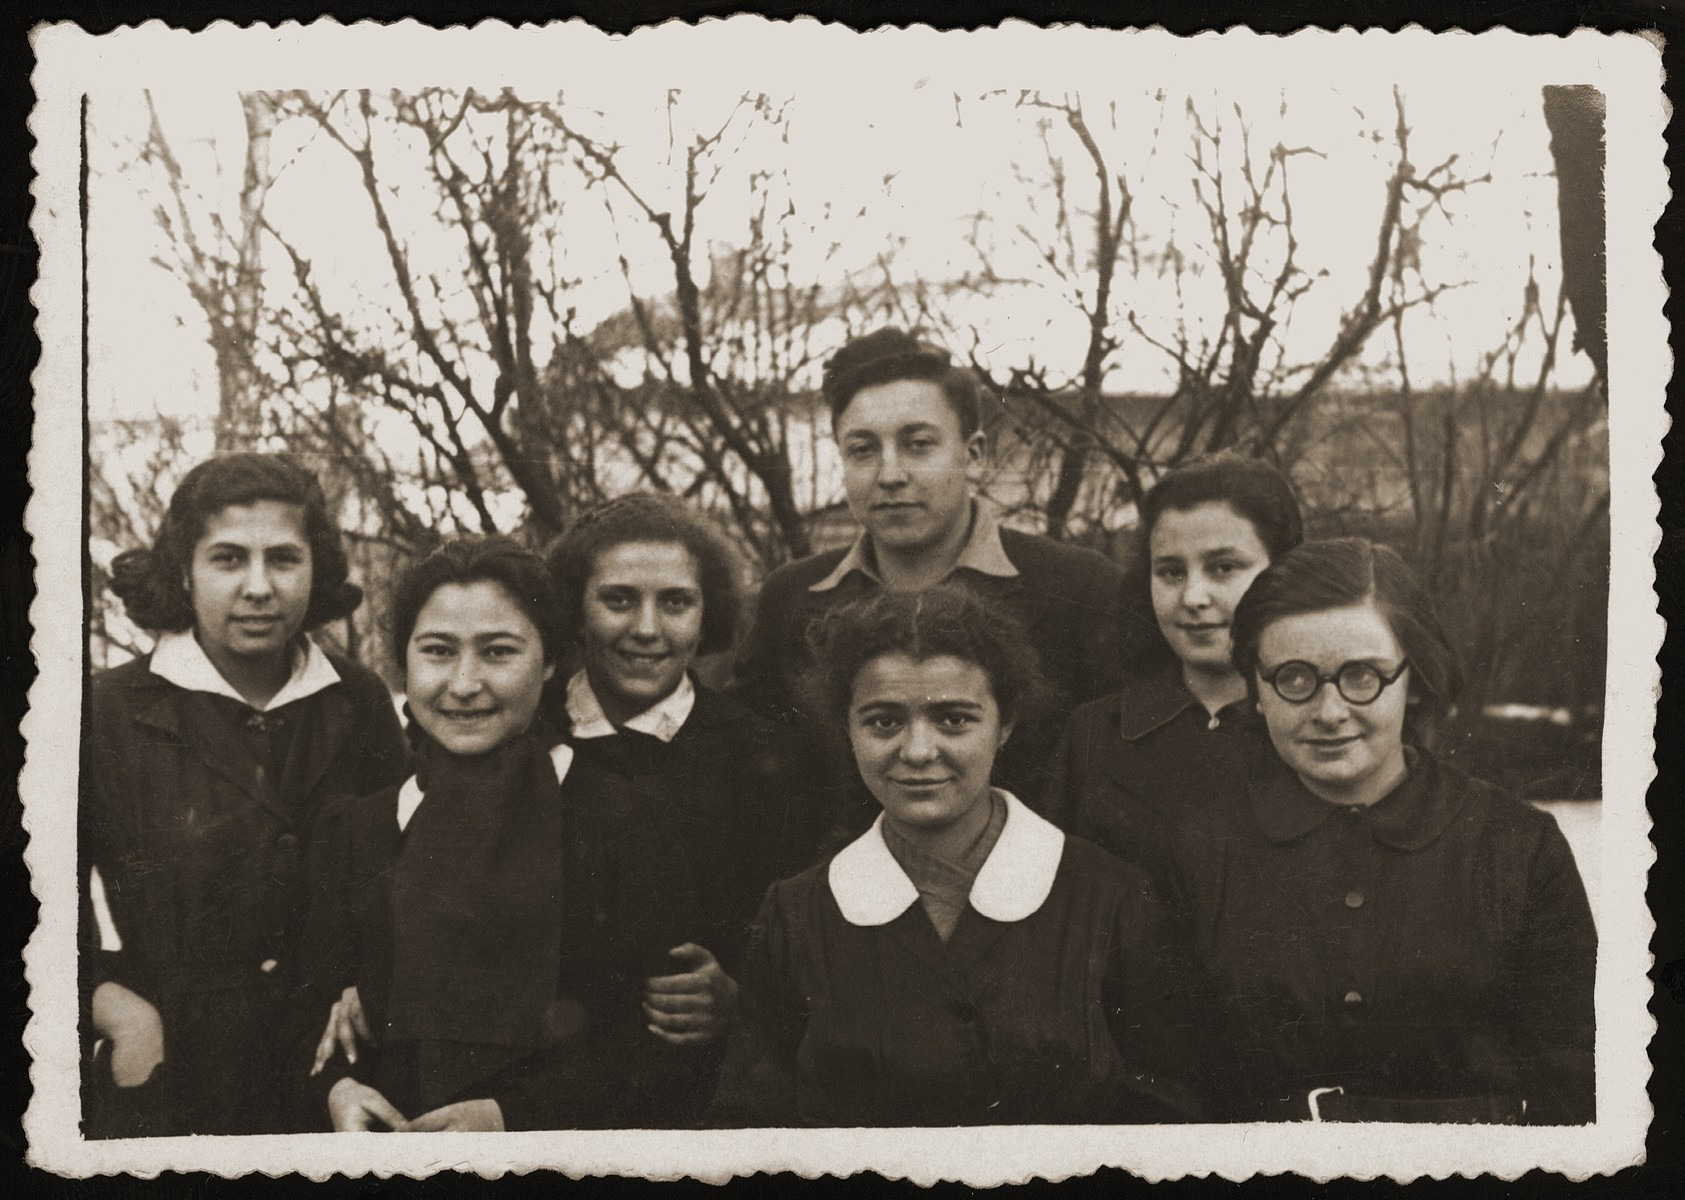 Group portrait of members of an Hashomer Hatzair Zionist youth group in Bialystok.    Among those pictured are Malka Orkin (center, front) and her friend Tusia Goldberg (third from the left).  Tusia, whose father later became a member of the Bialystok ghetto Jewish council, survived the war.